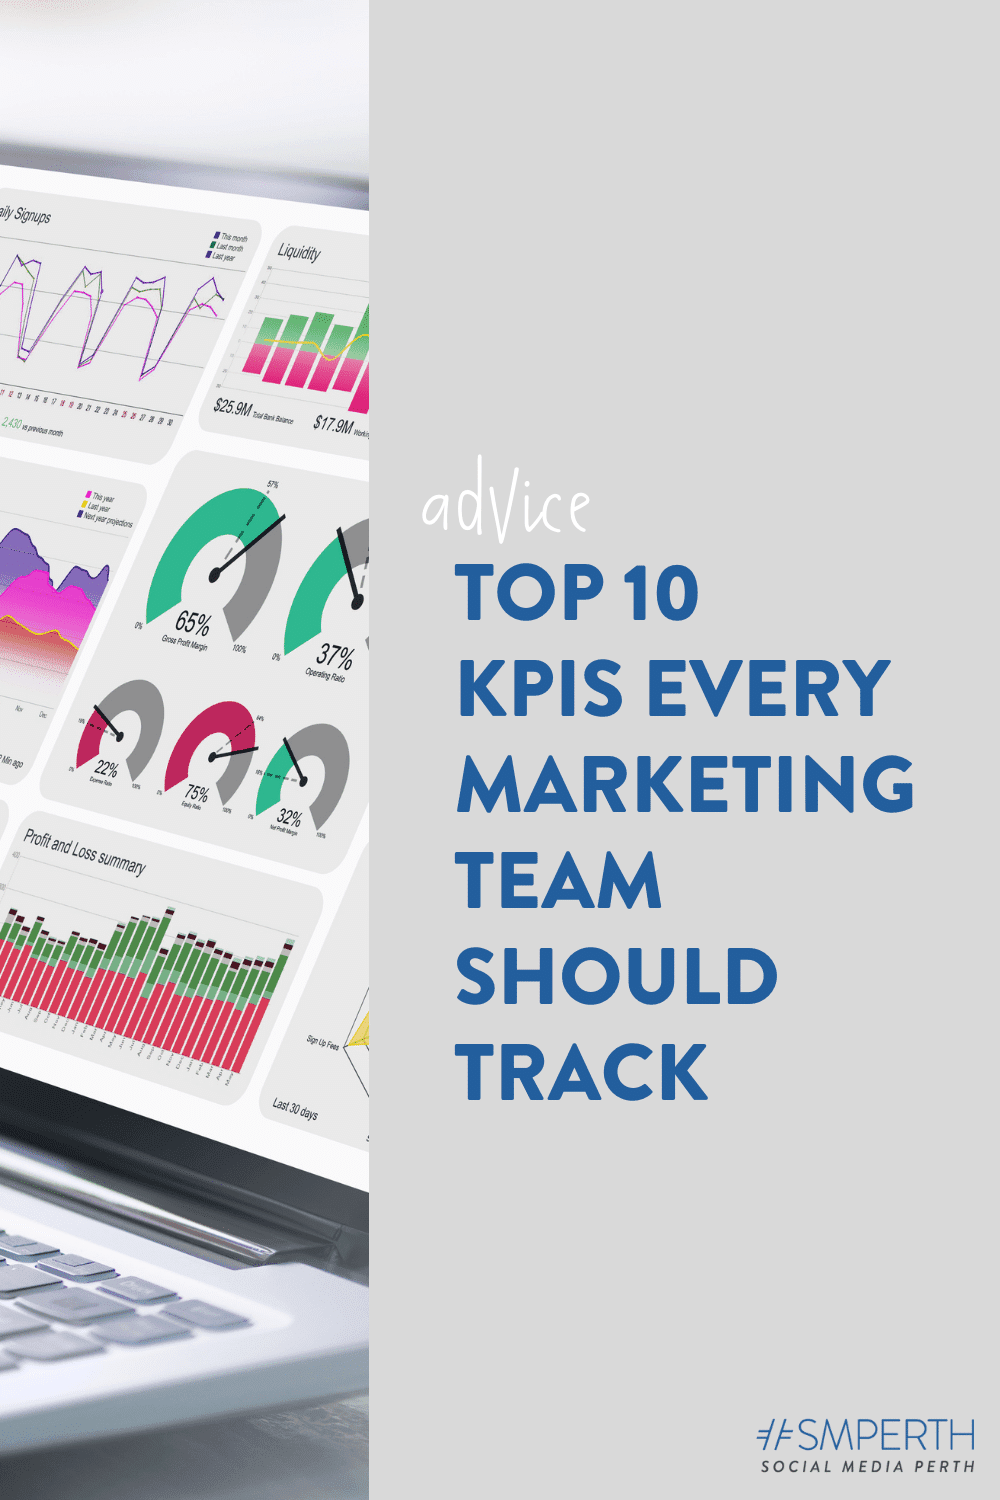 Top 10 KPIs Every Marketing Team Should Track